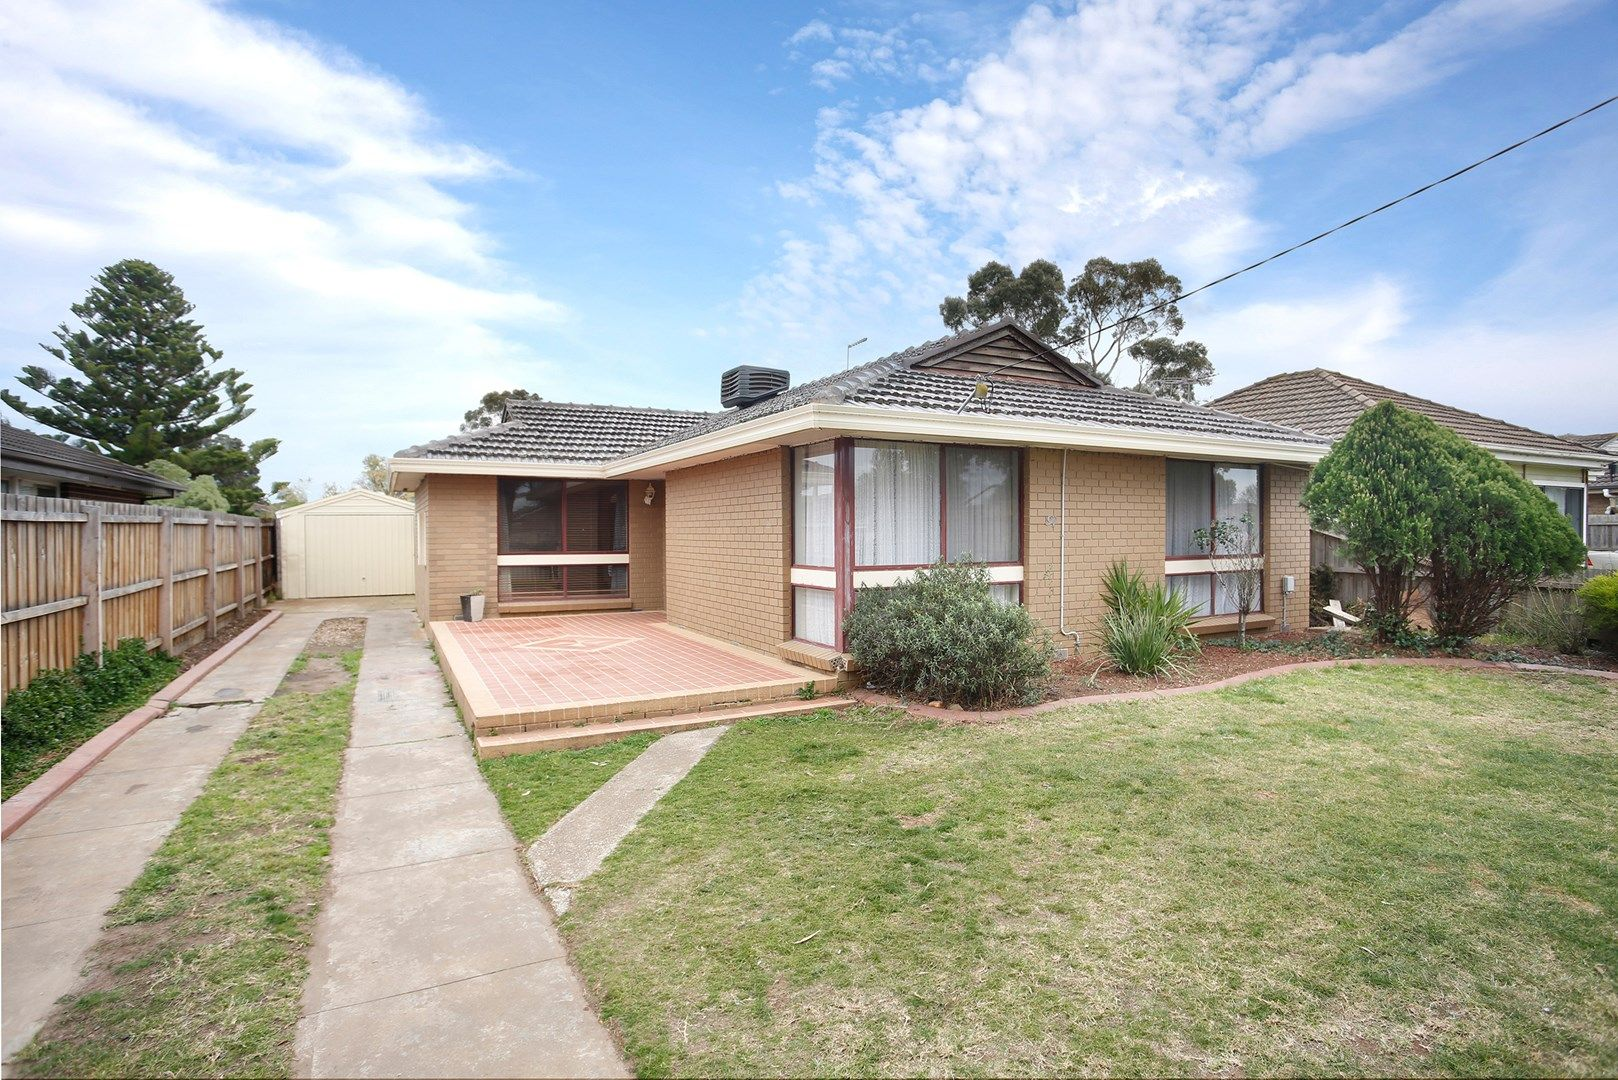 97 Exford Road, Melton South VIC 3338, Image 0